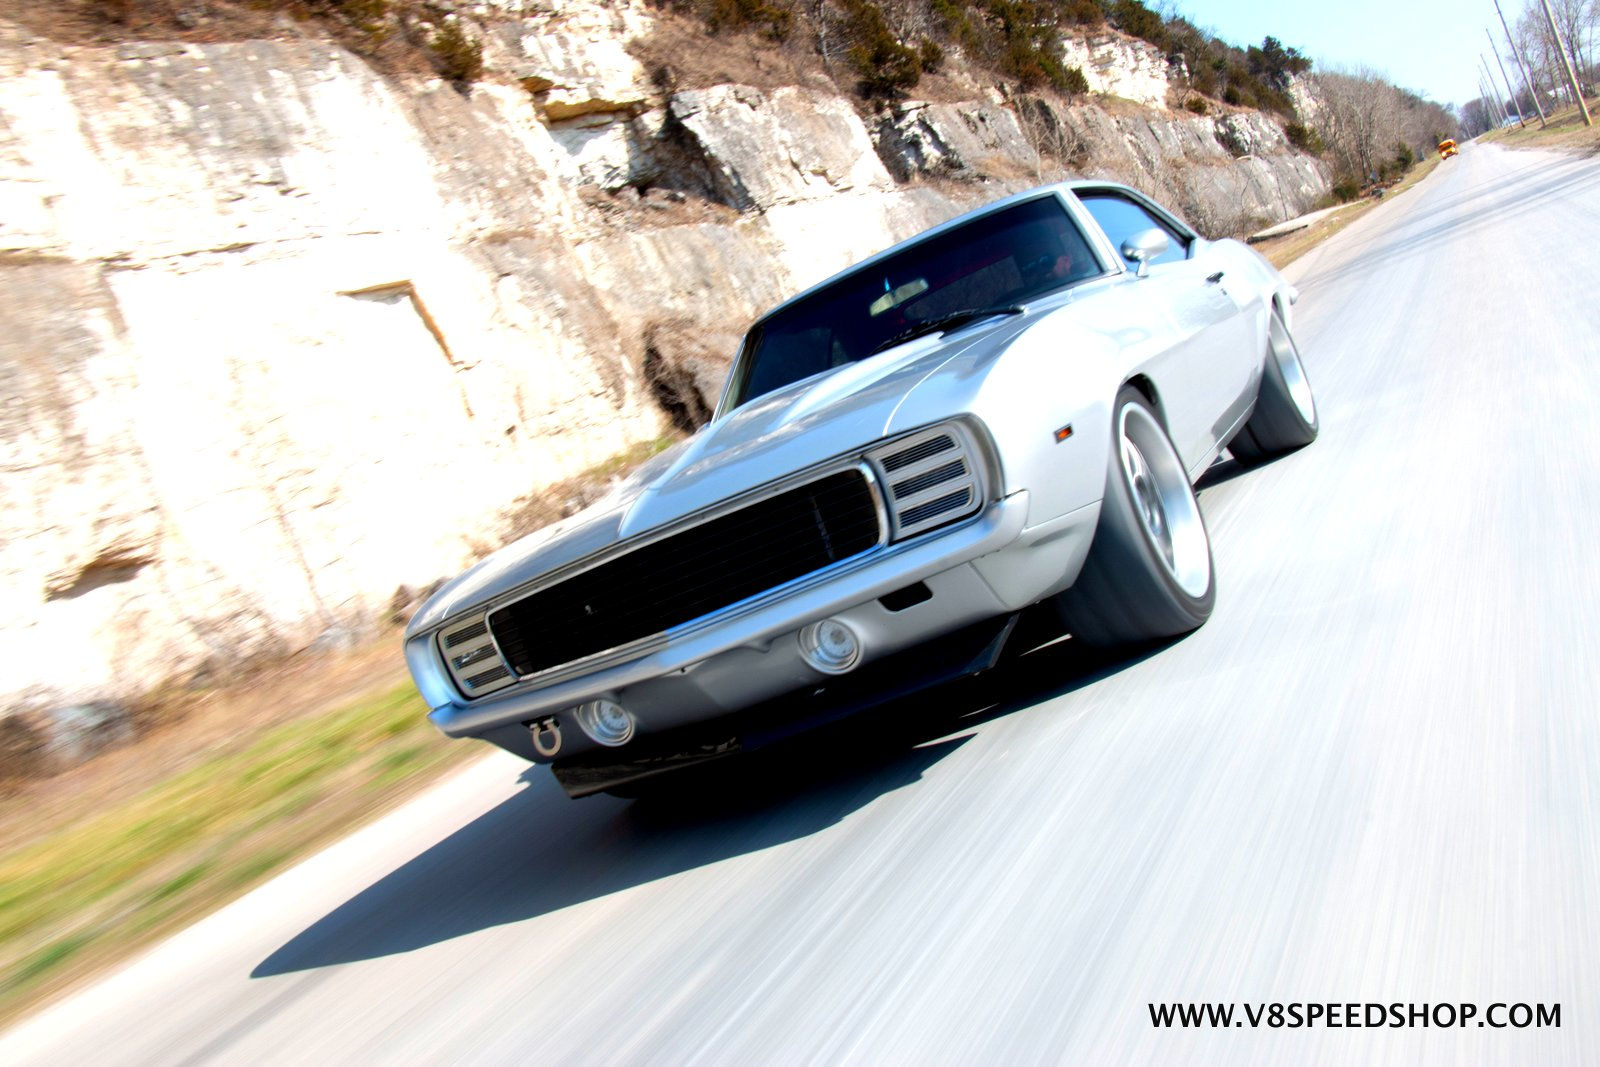 Supercharged LT4 powered 1969 Camaro at V8 Speed and Resto Shop